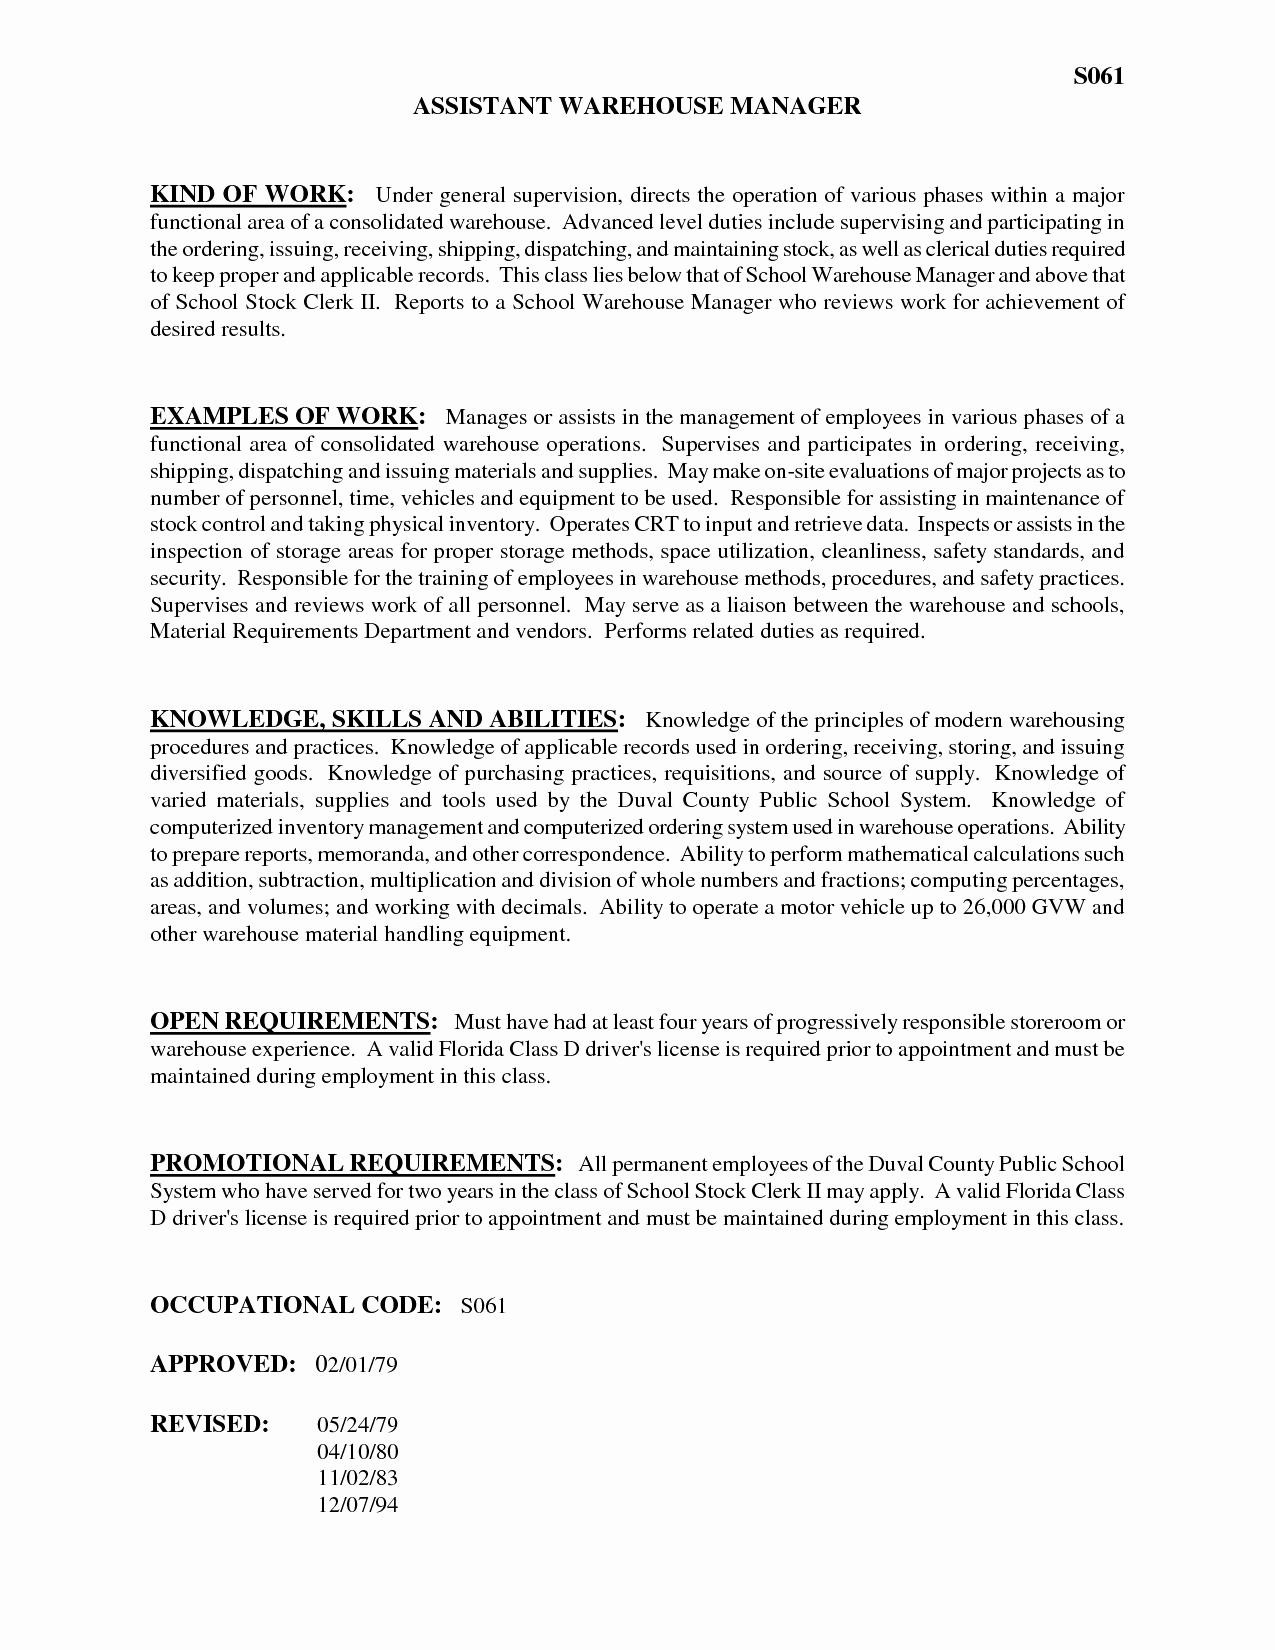 Shipping and Receiving Clerk Job Description for Resume - 17 Shipping and Receiving Clerk Resume